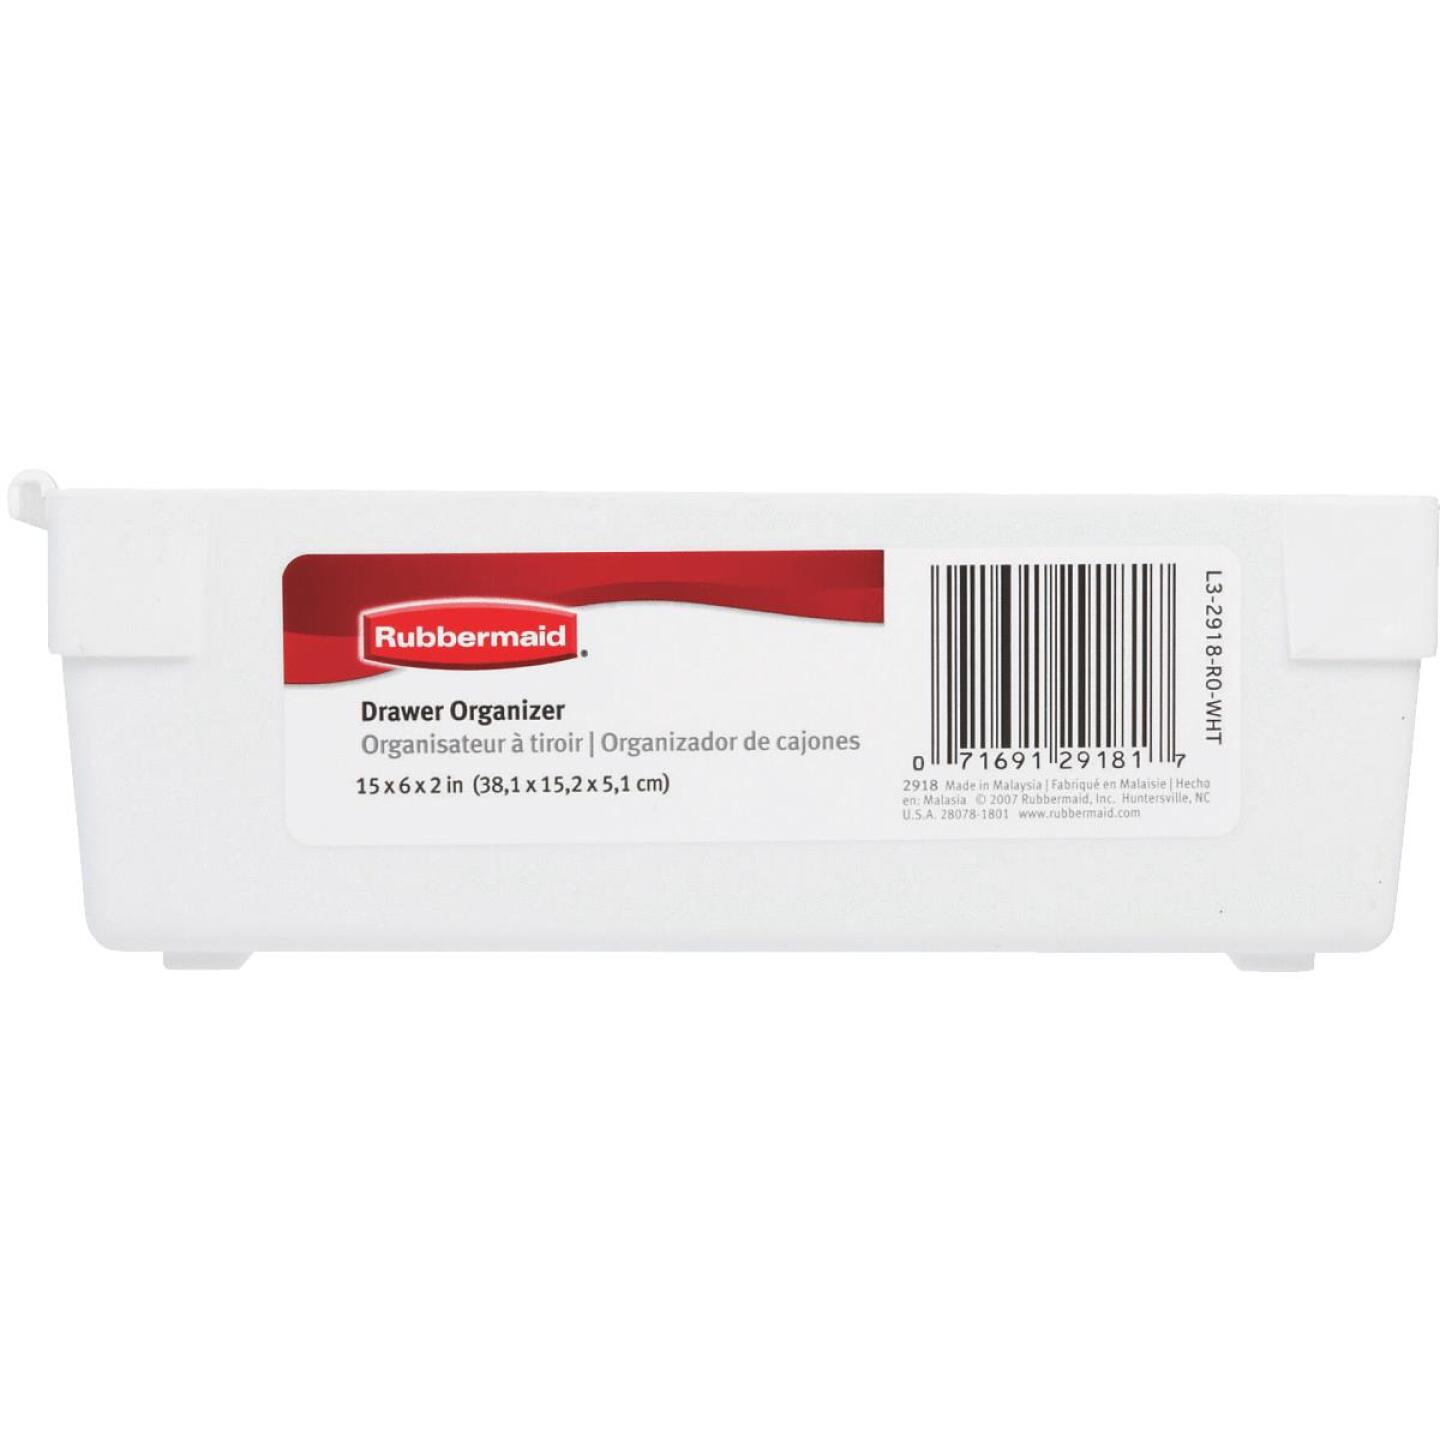 Rubbermaid 6 In. x 15 In. x 2 In. White Drawer Organizer Tray Image 3